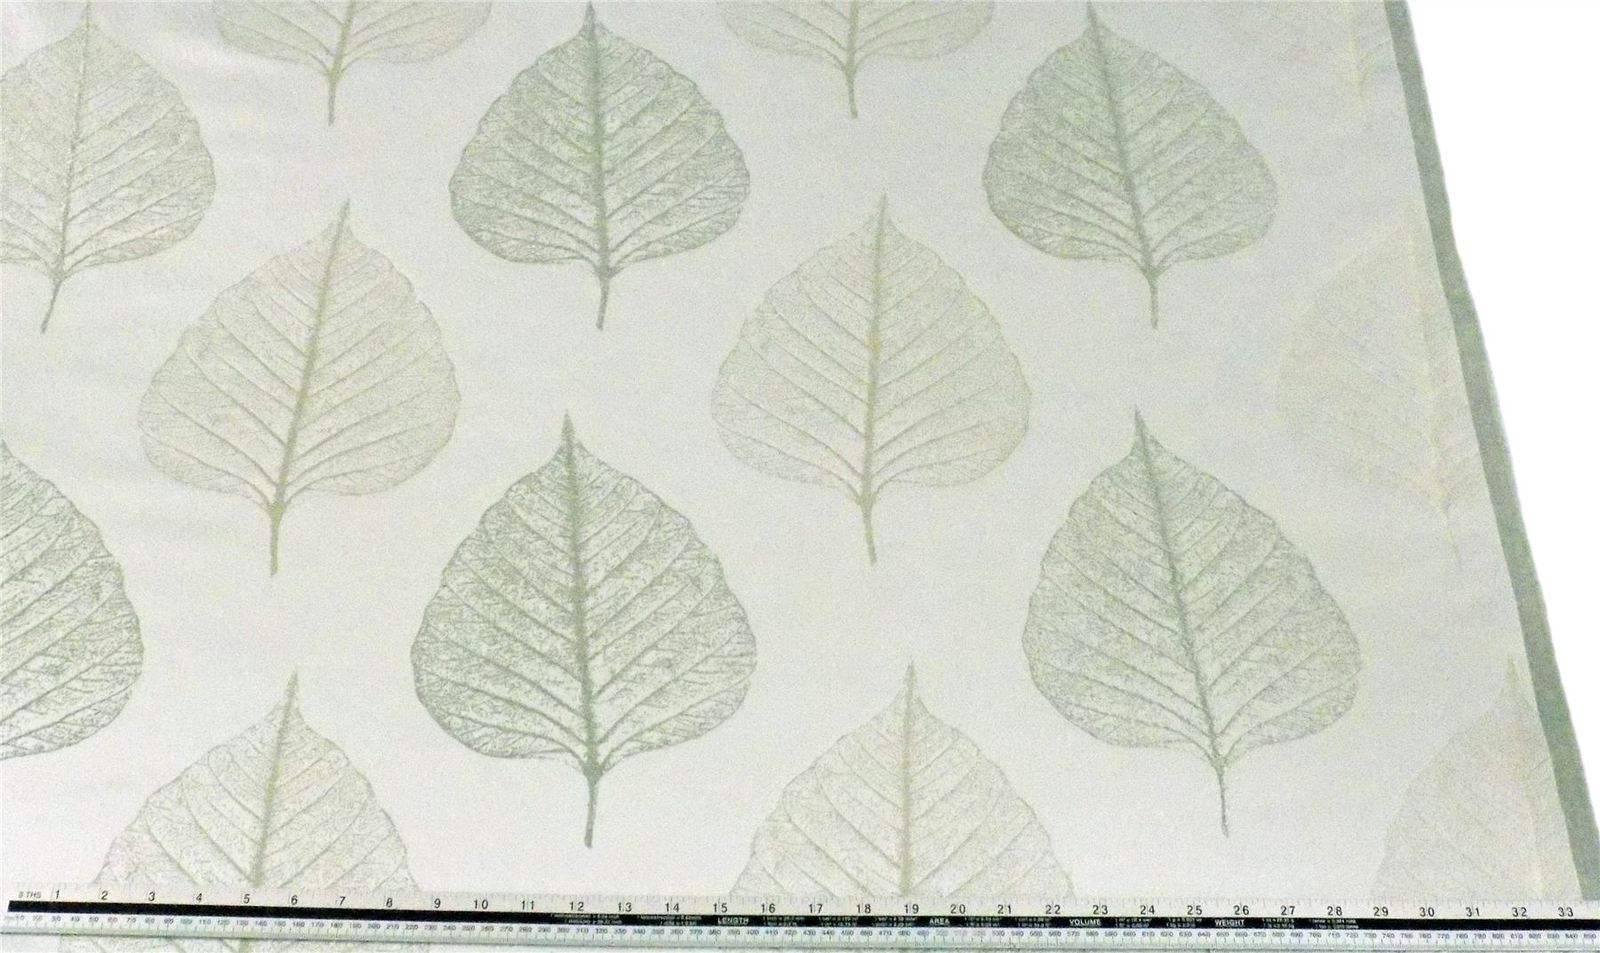 Slub Effect Silver Cream Embroidered Leaf Leaves Fabric Material *2 Sizes*